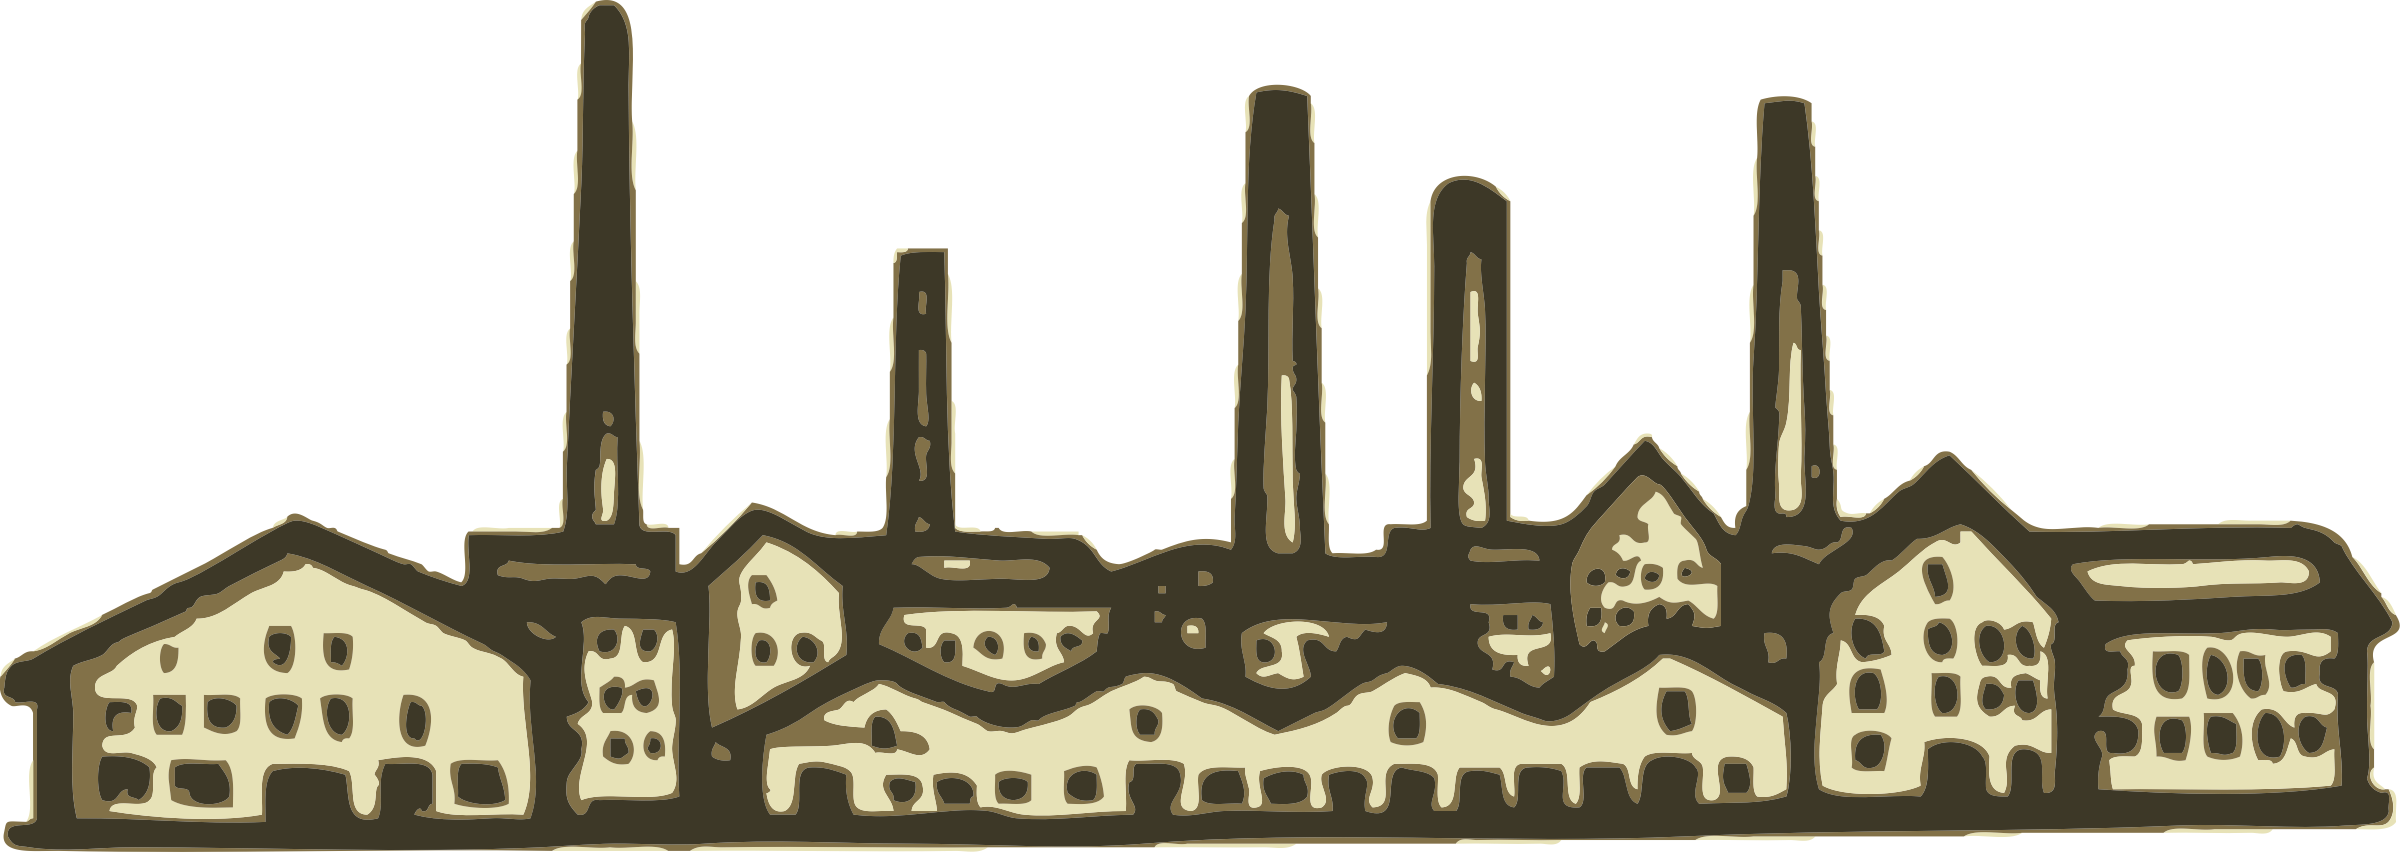 Old icons png free. Factory clipart nature